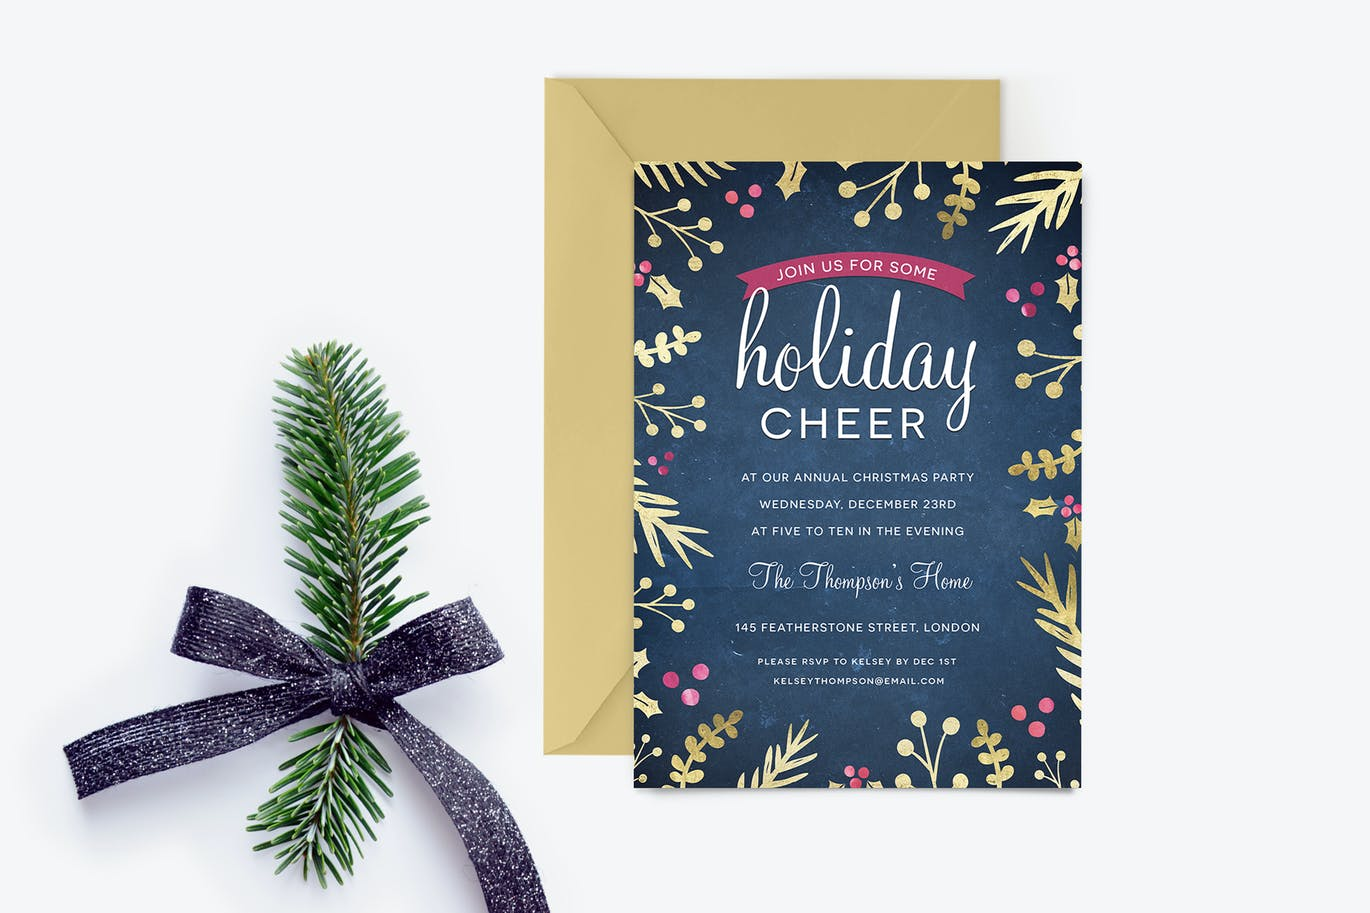 Foil Foliage Christmas Party Invitaiton by ClementineCreative on ...